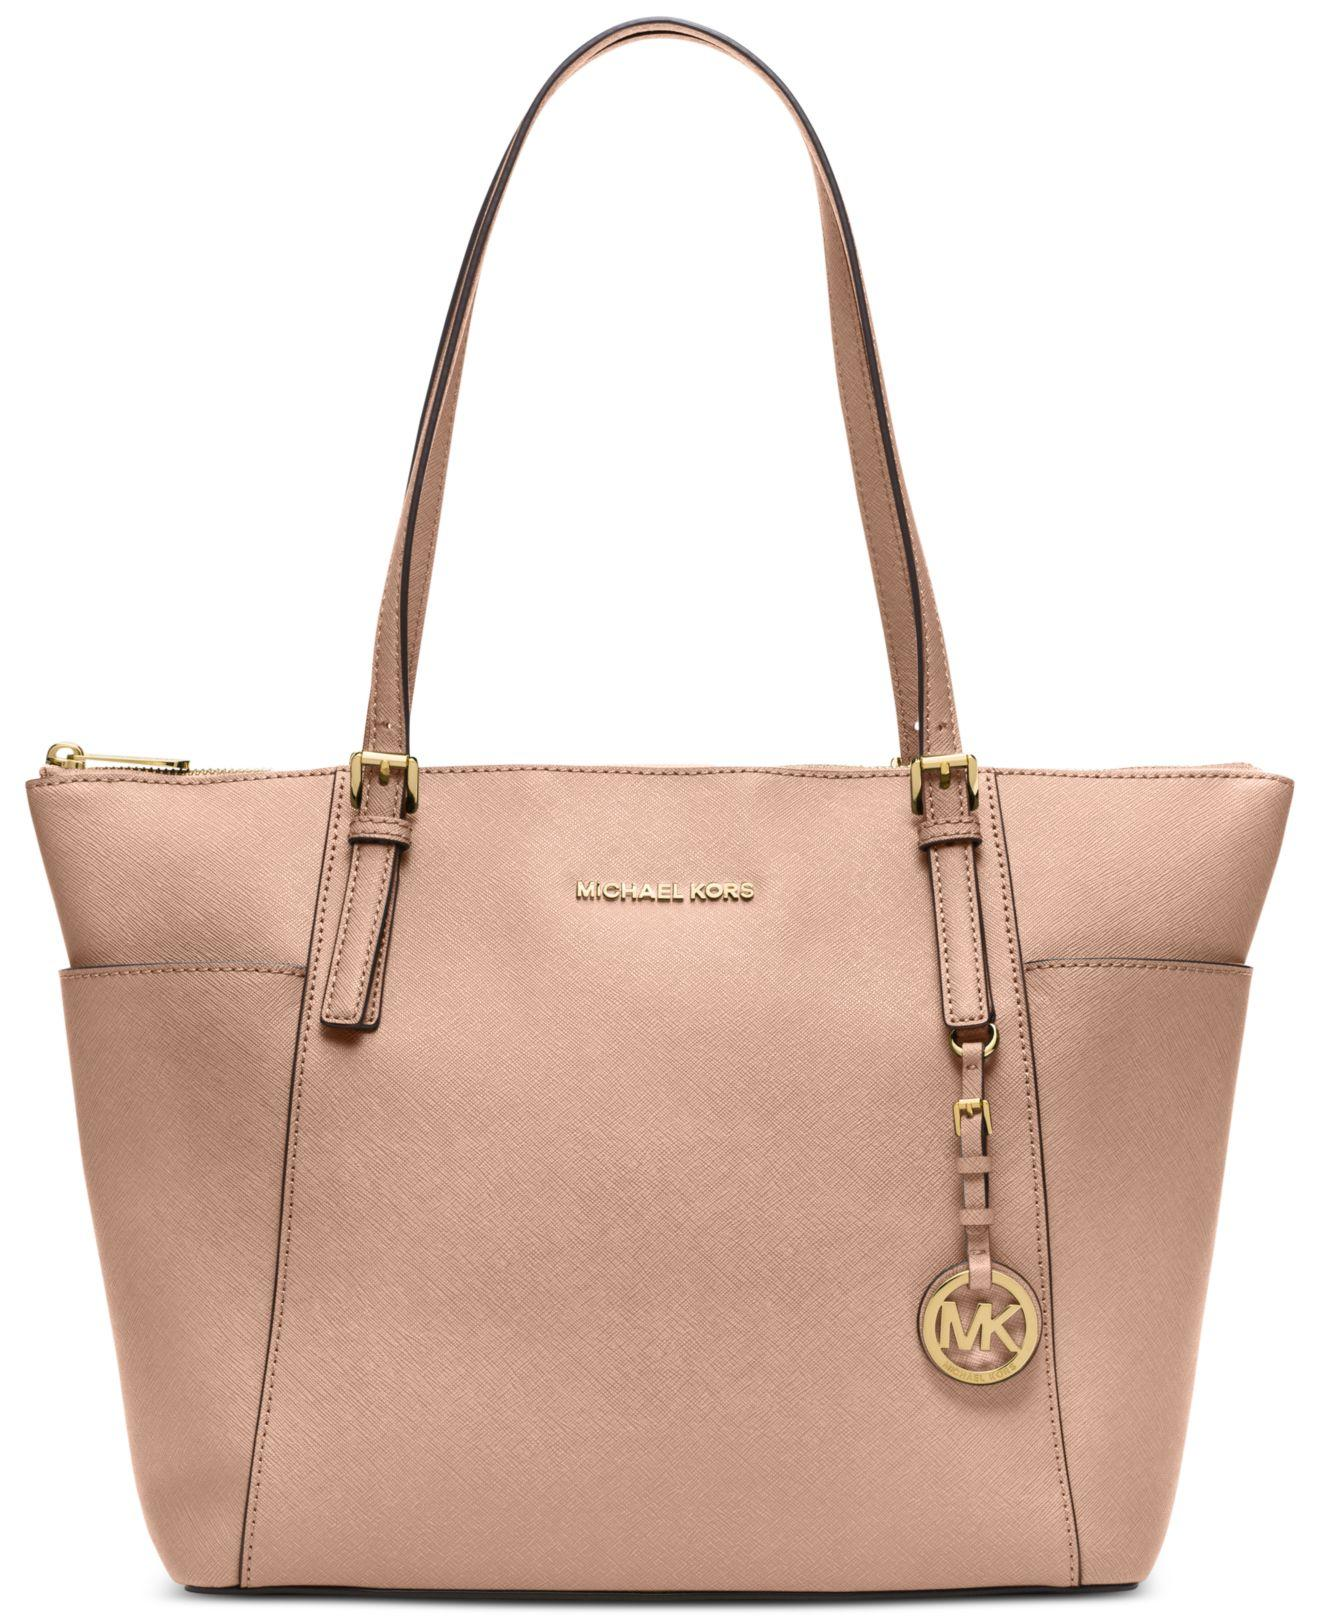 michael kors jet set item large east west top zip tote in pink lyst. Black Bedroom Furniture Sets. Home Design Ideas